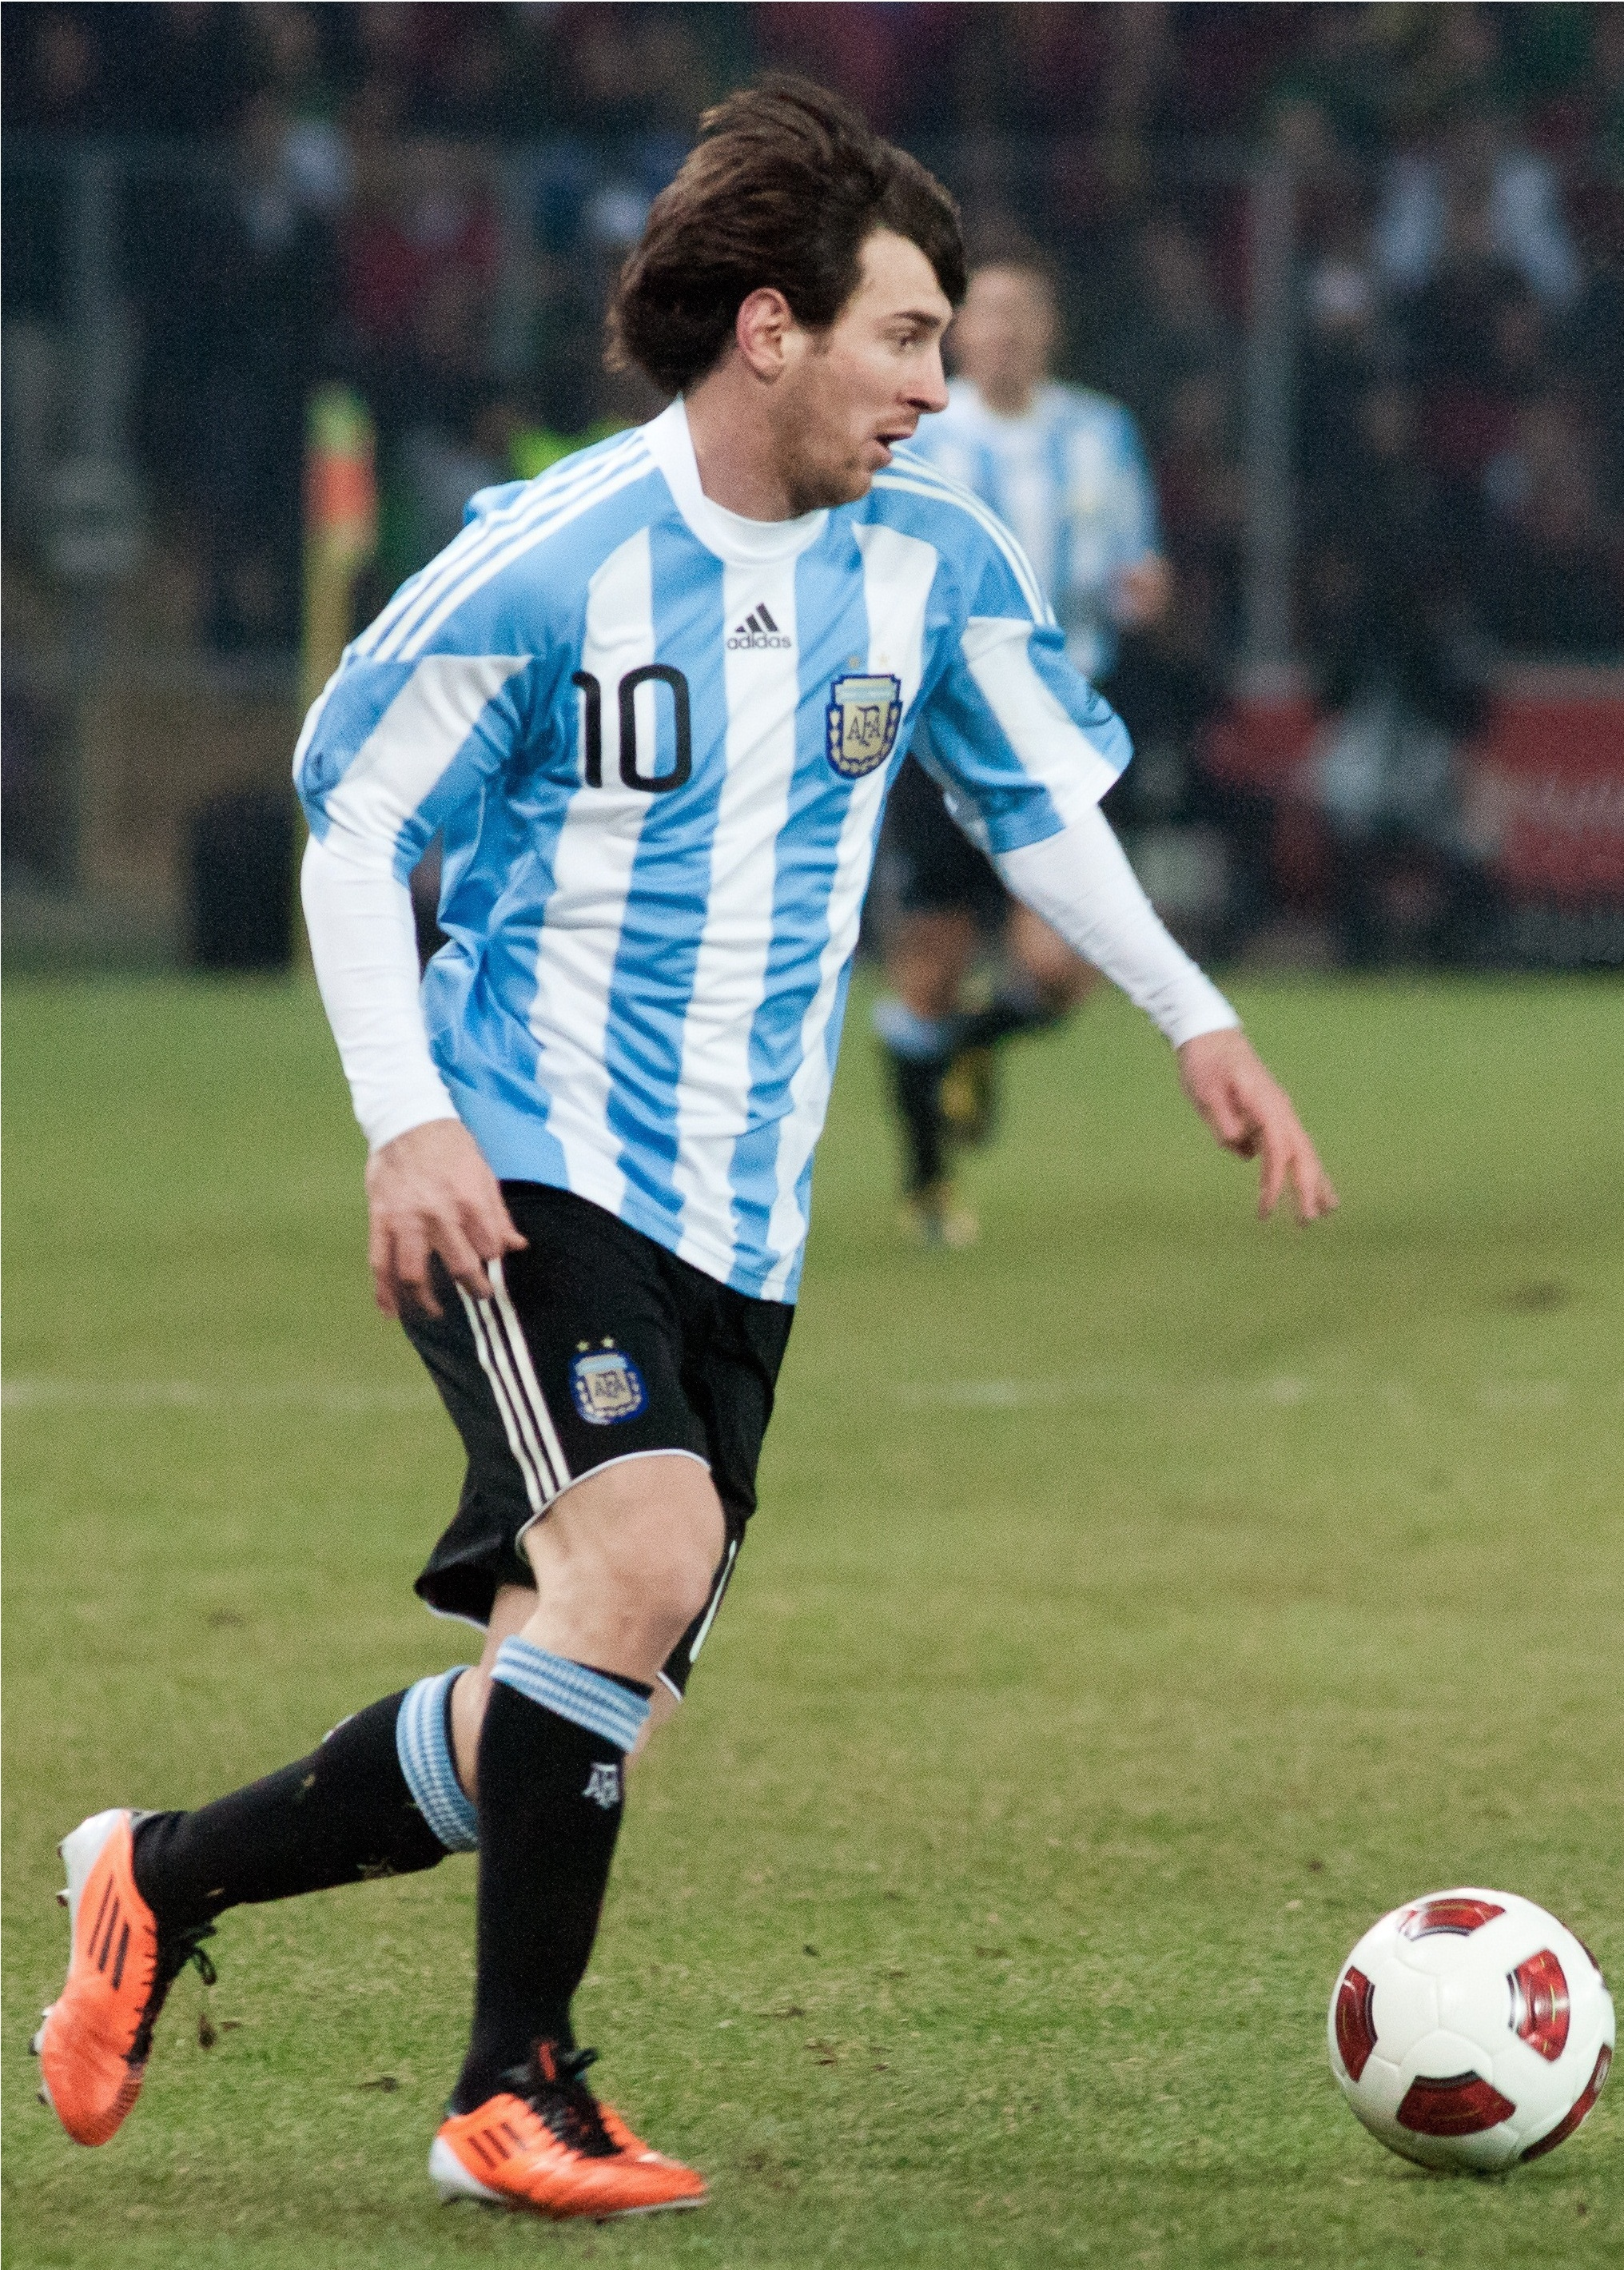 File Lionel Messi Player Of Argentina National Football Team Jpg